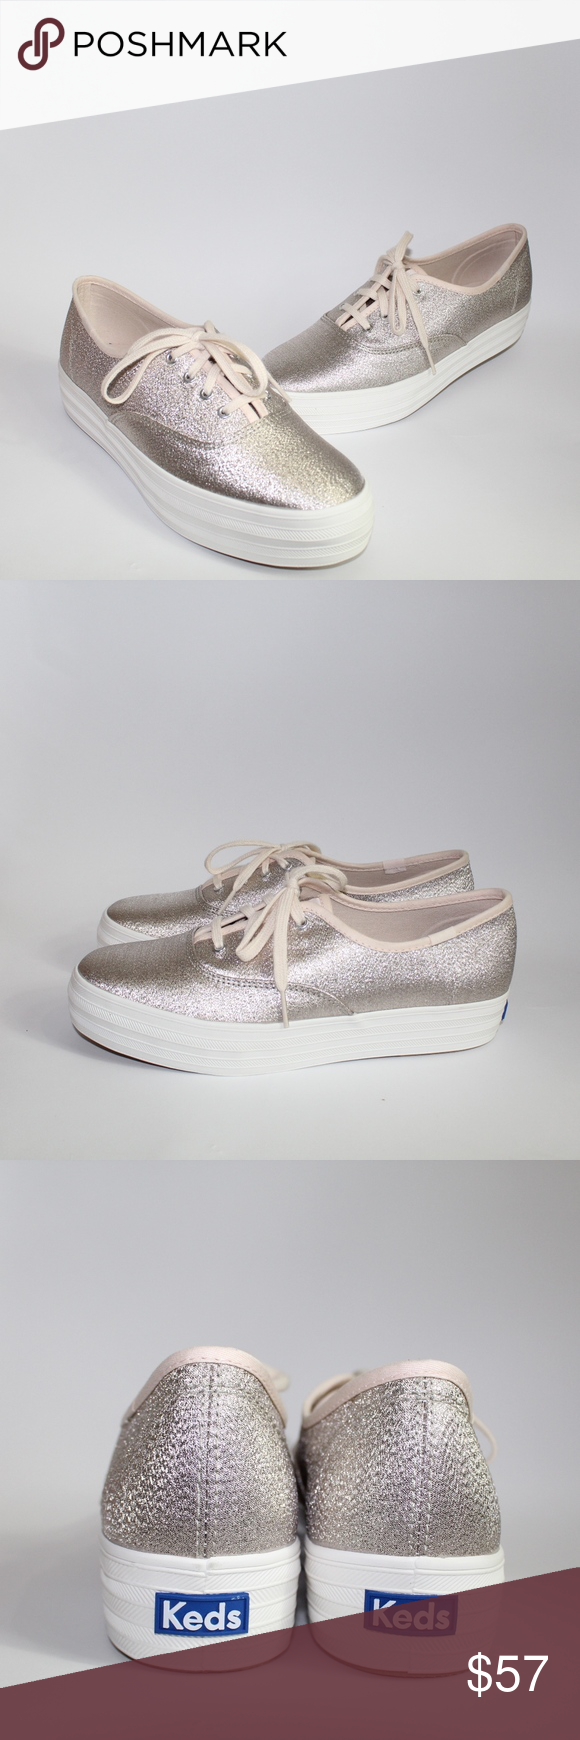 dfbec8c47d3cc Keds Champagne Triple Lurex Shimmer Sneakers 8.5 New without box. Platform  shimmer sneaker from Kids. Keds Shoes Athletic Shoes